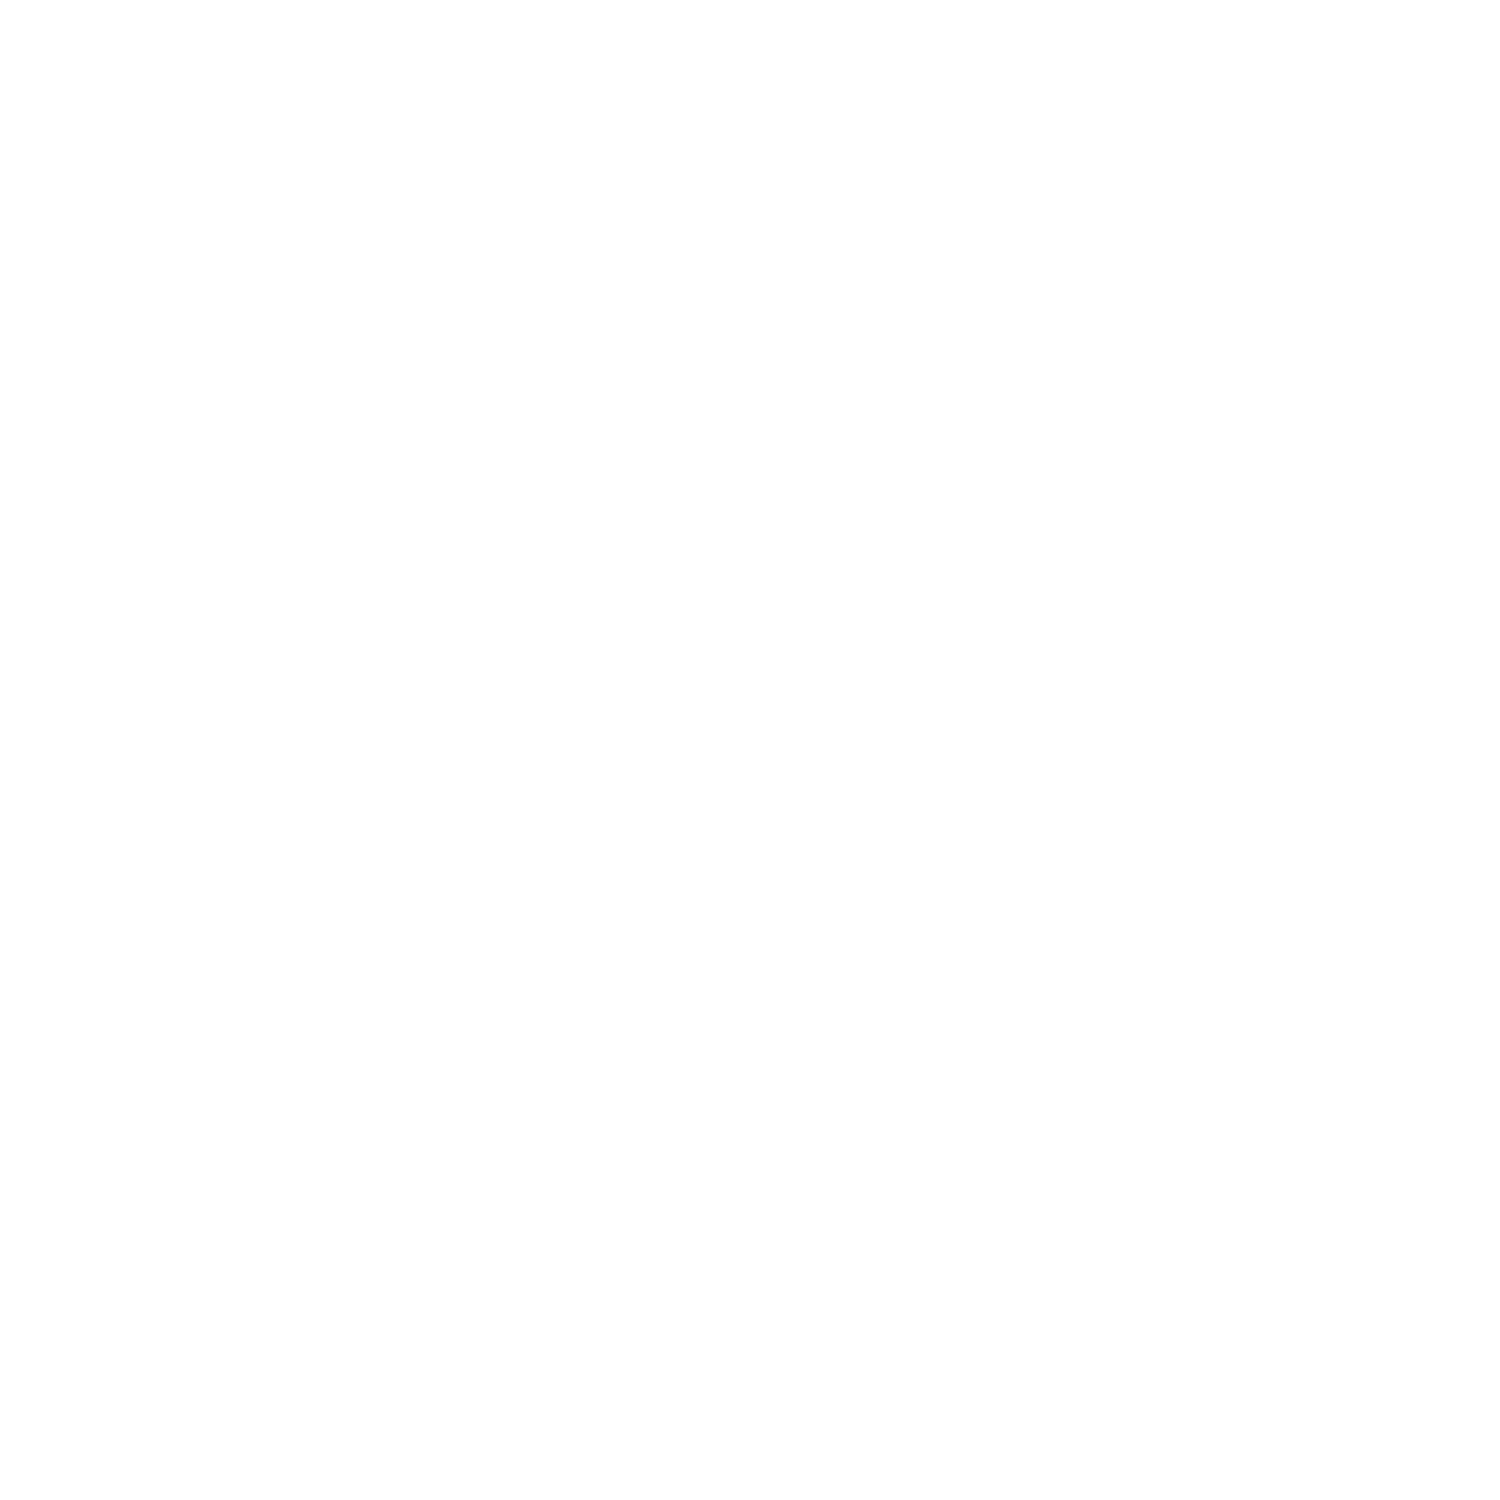 stellar coffee co.